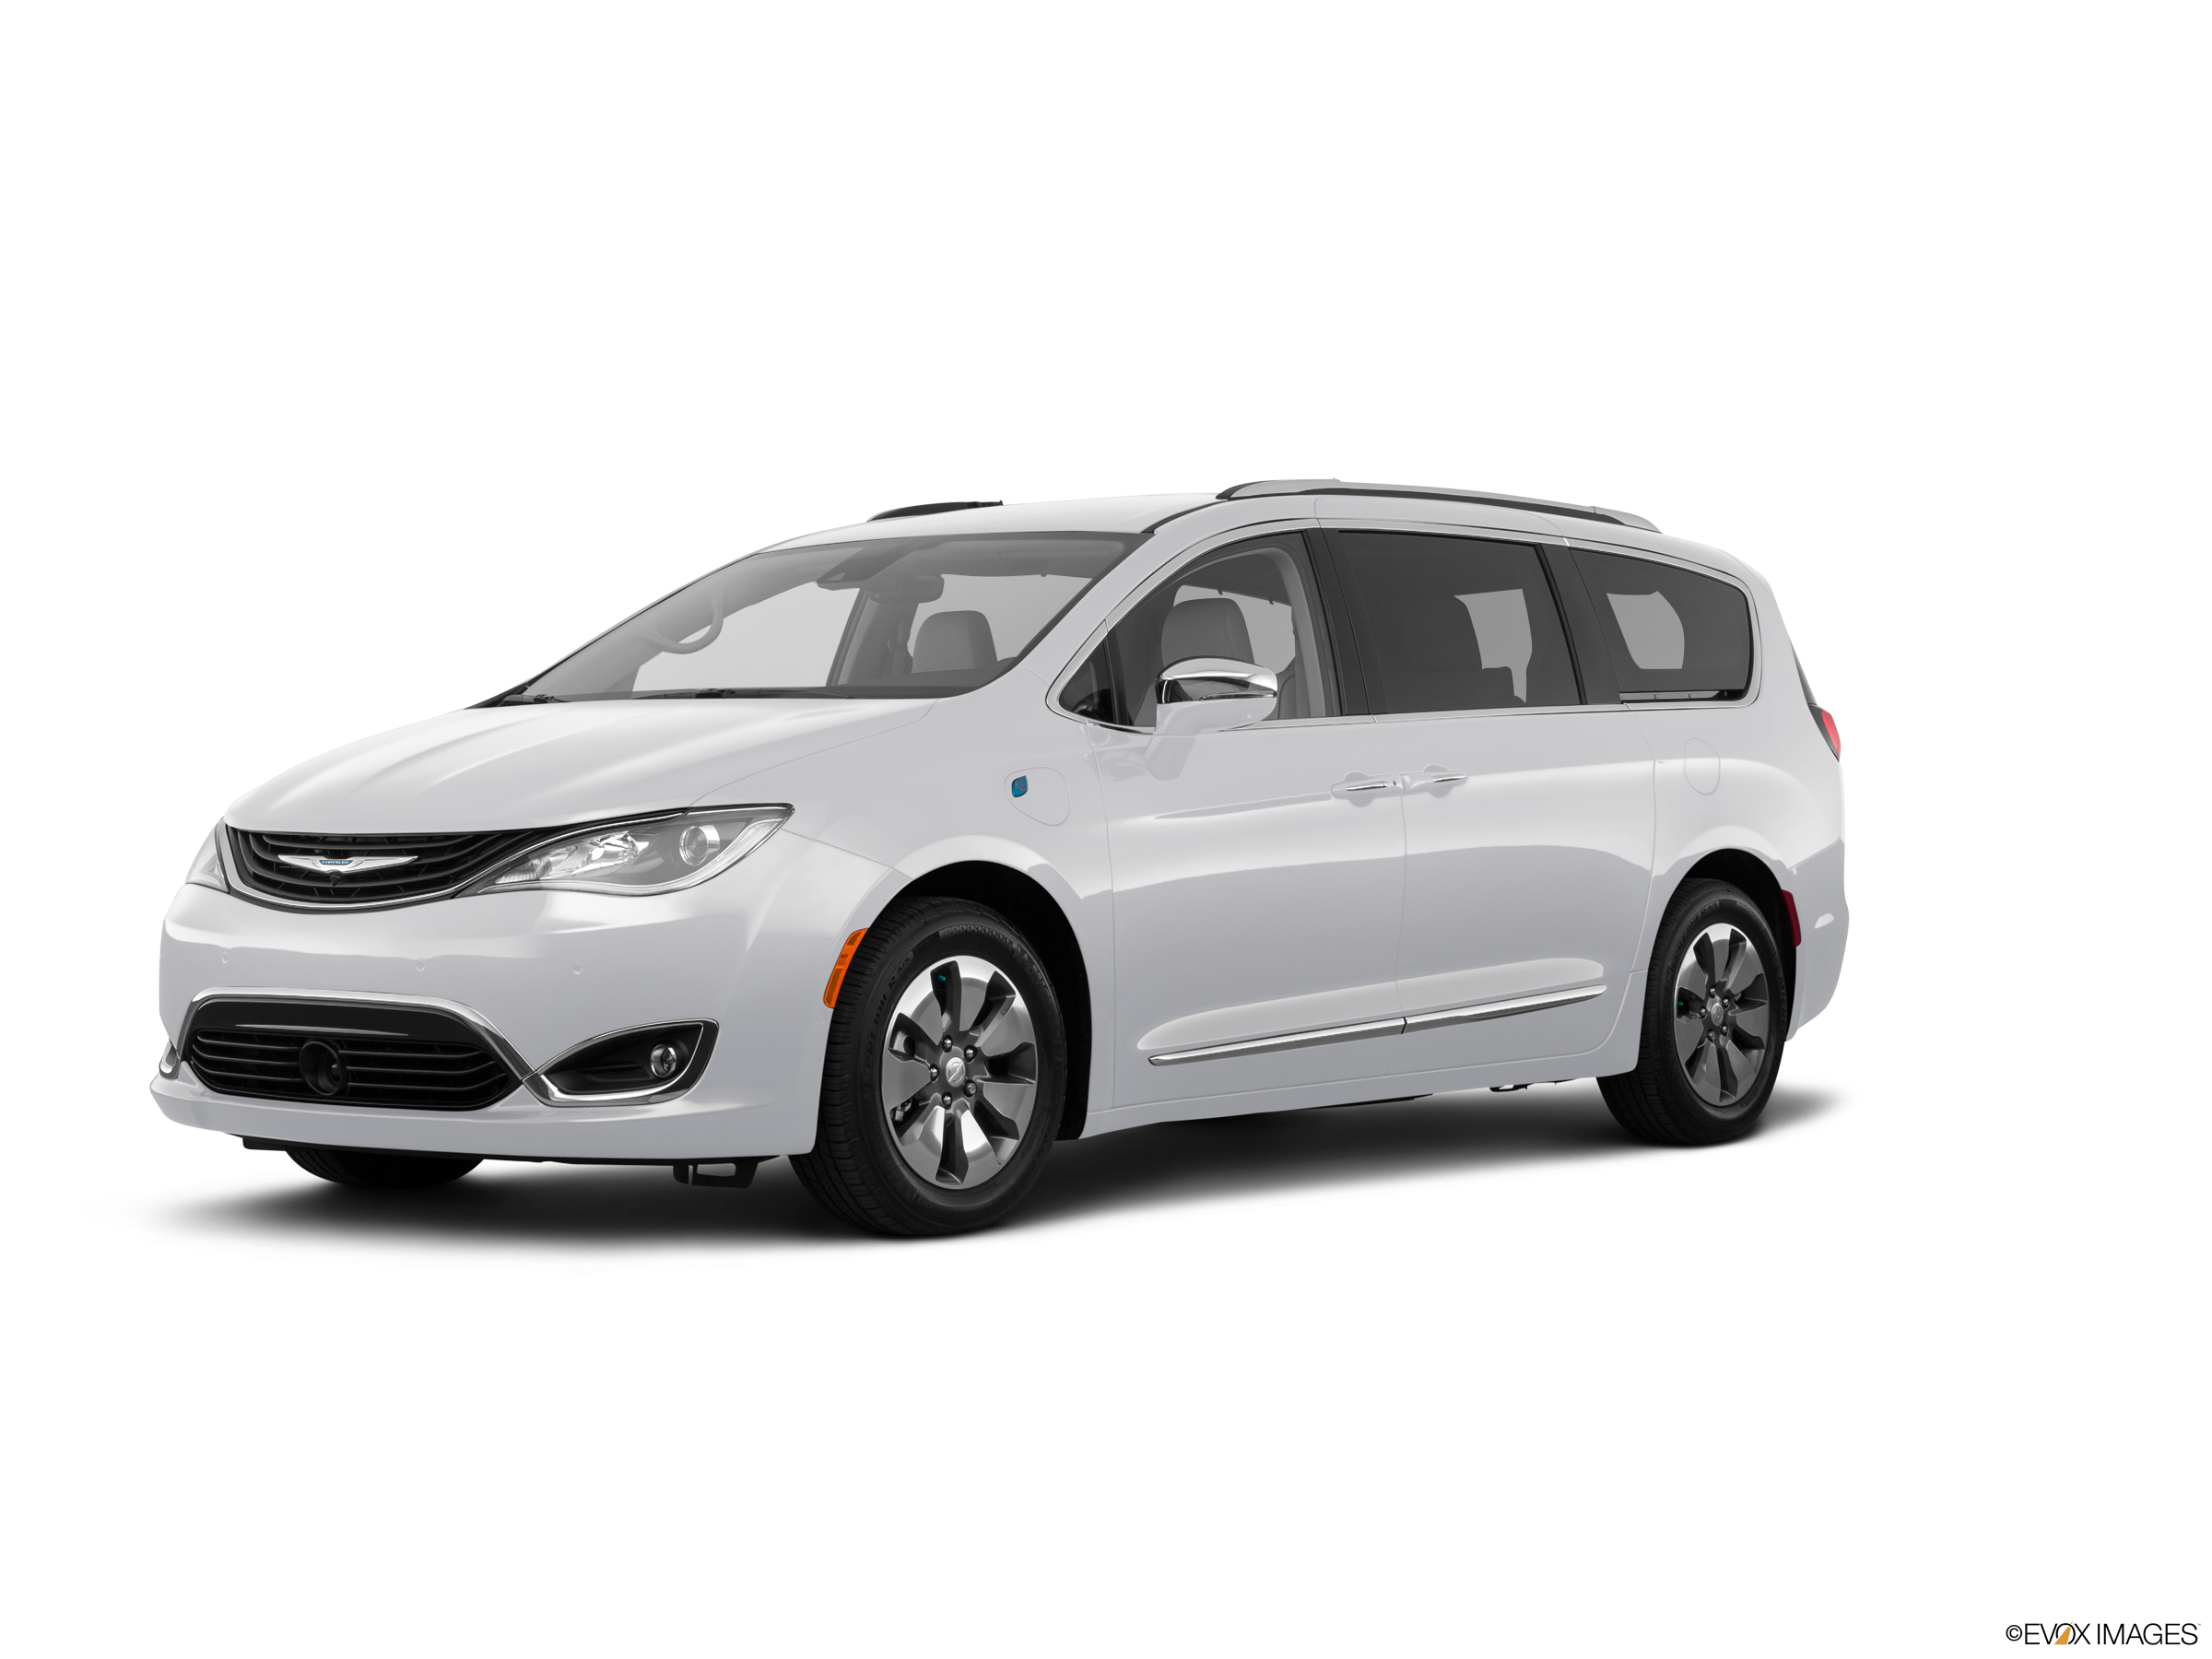 Top Consumer Rated Van/Minivans of 2018 - 2018 Chrysler Pacifica Hybrid